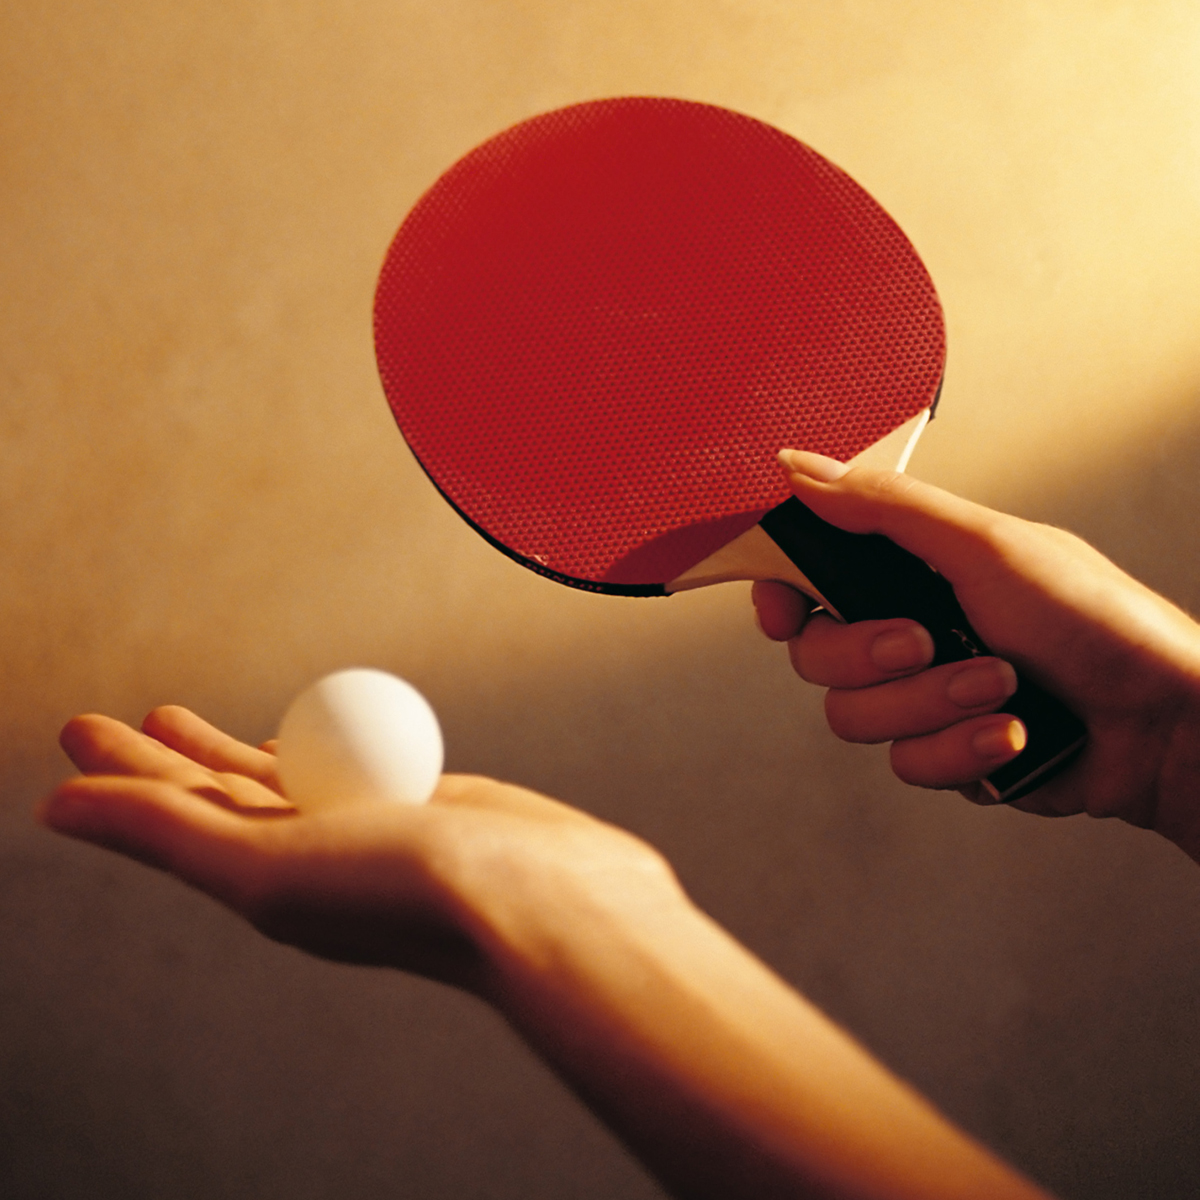 TABLE TENNIS: Charlie Lane's heroics in vain for beaten Moreton